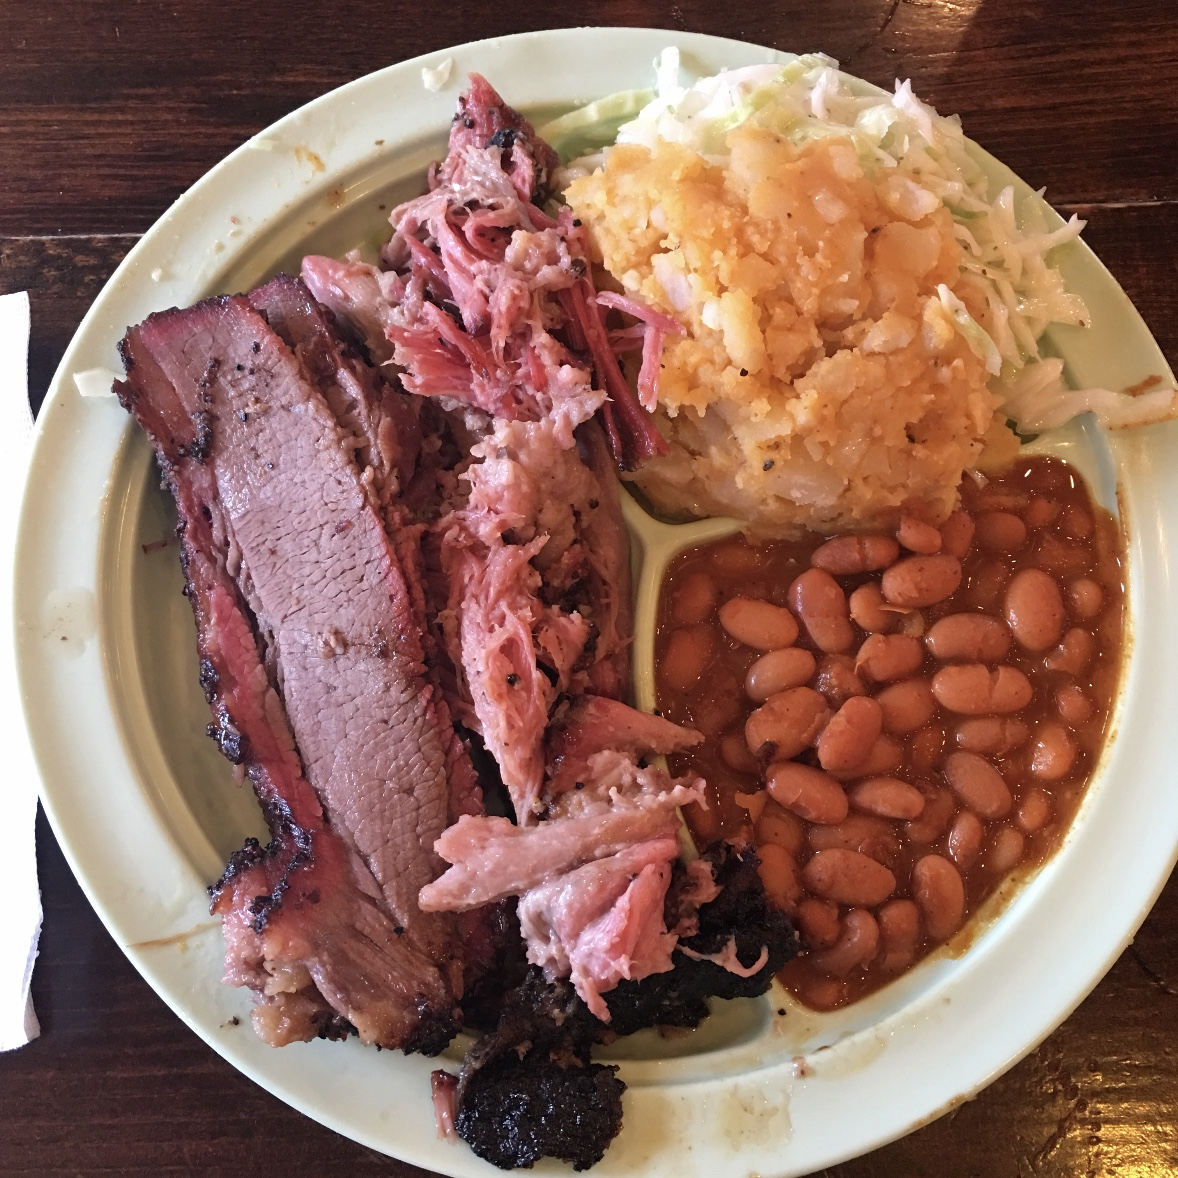 A full plate of barbeque, brisket, pulled pork, beans, potato salad